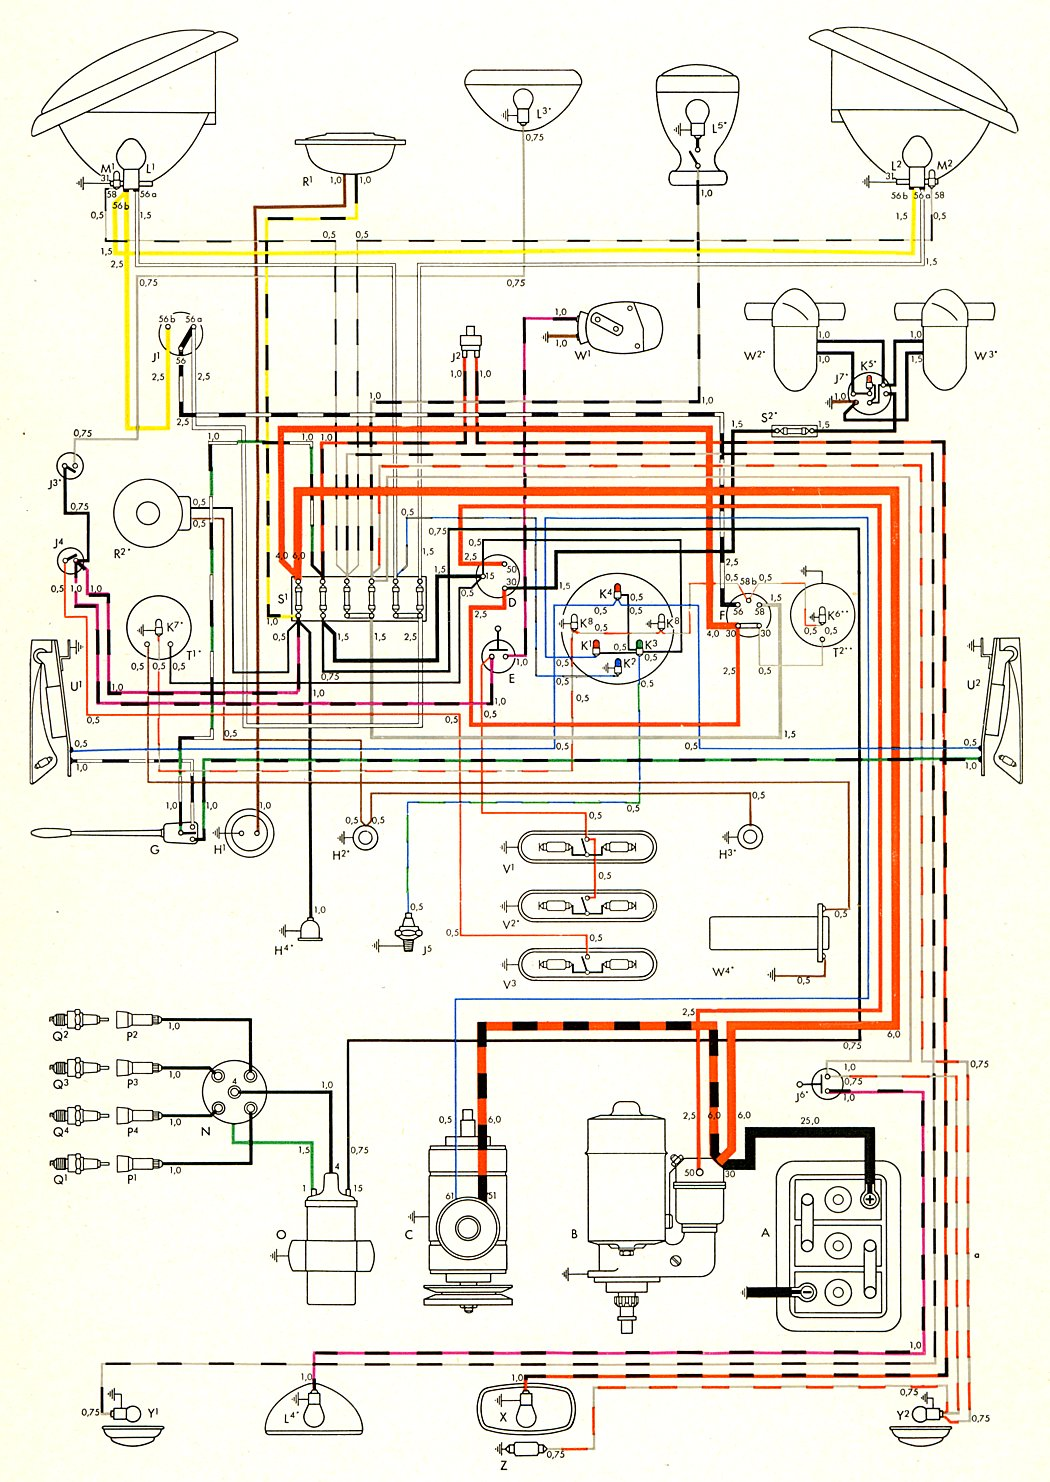 bus_nov57 1957 bus wiring diagram thegoldenbug com 1957 vw bug wiring diagram at soozxer.org